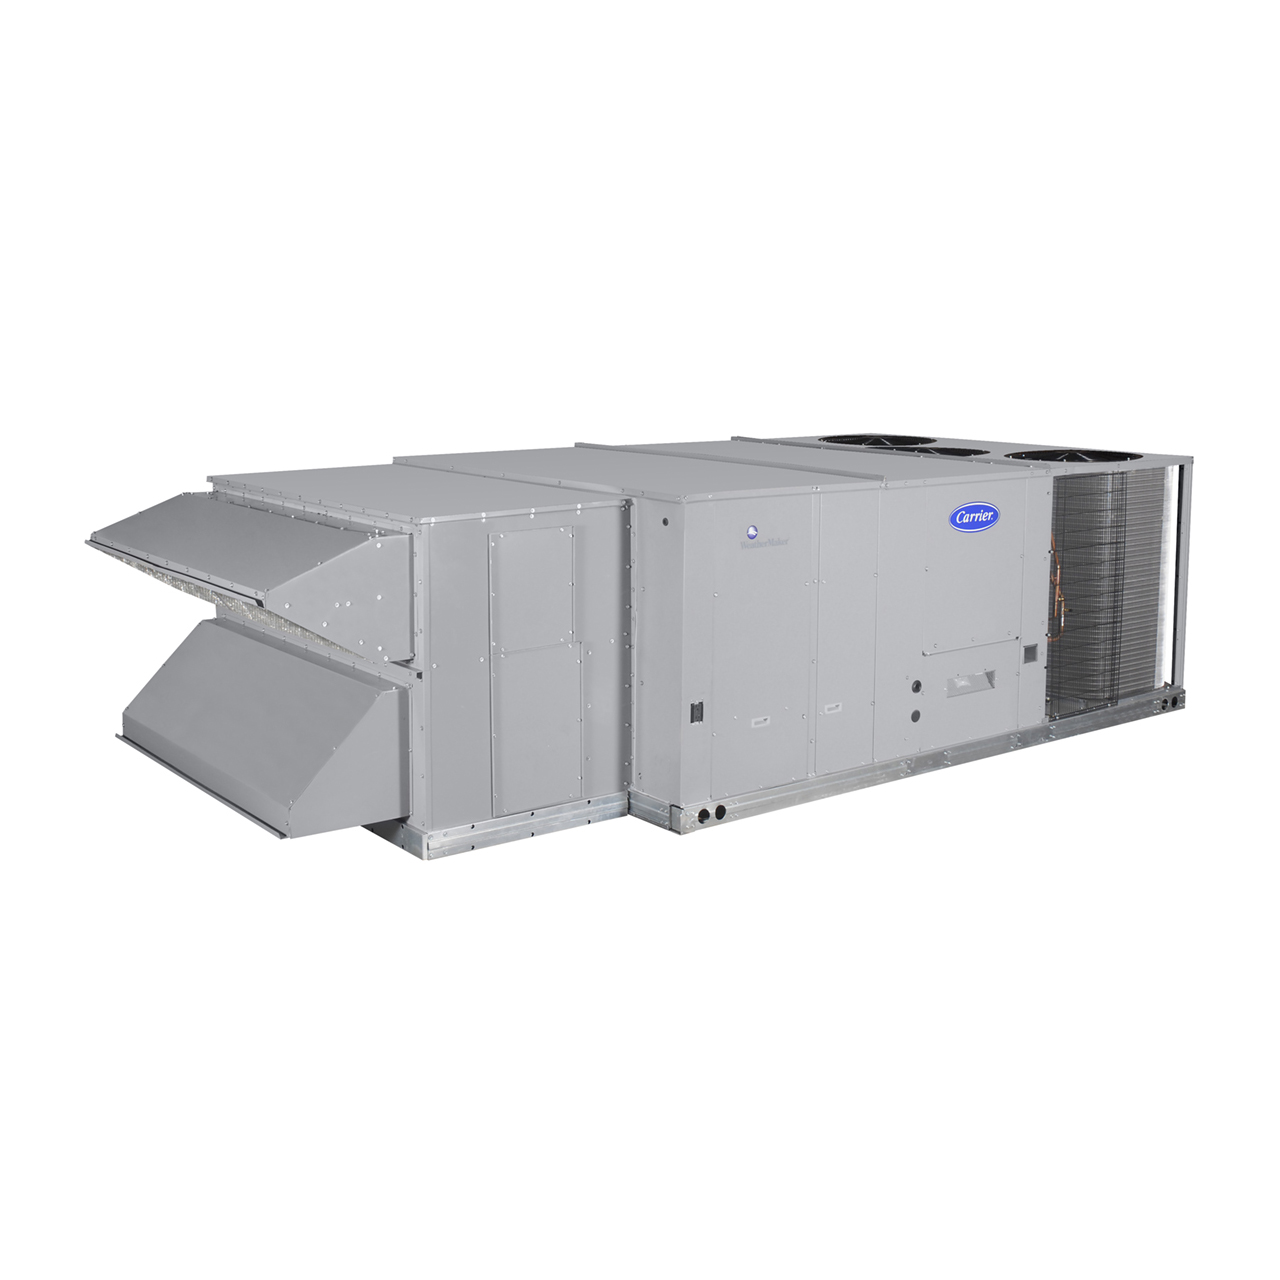 """48HC WeatherMaster® rooftop units were designed by customers for customers. With a gauge plug, centralized control center, plug & play accessory board, """"no-strip screw"""" collars, and handled access panels, we've made the unit easy to install, easy to maintain, and easy to use."""